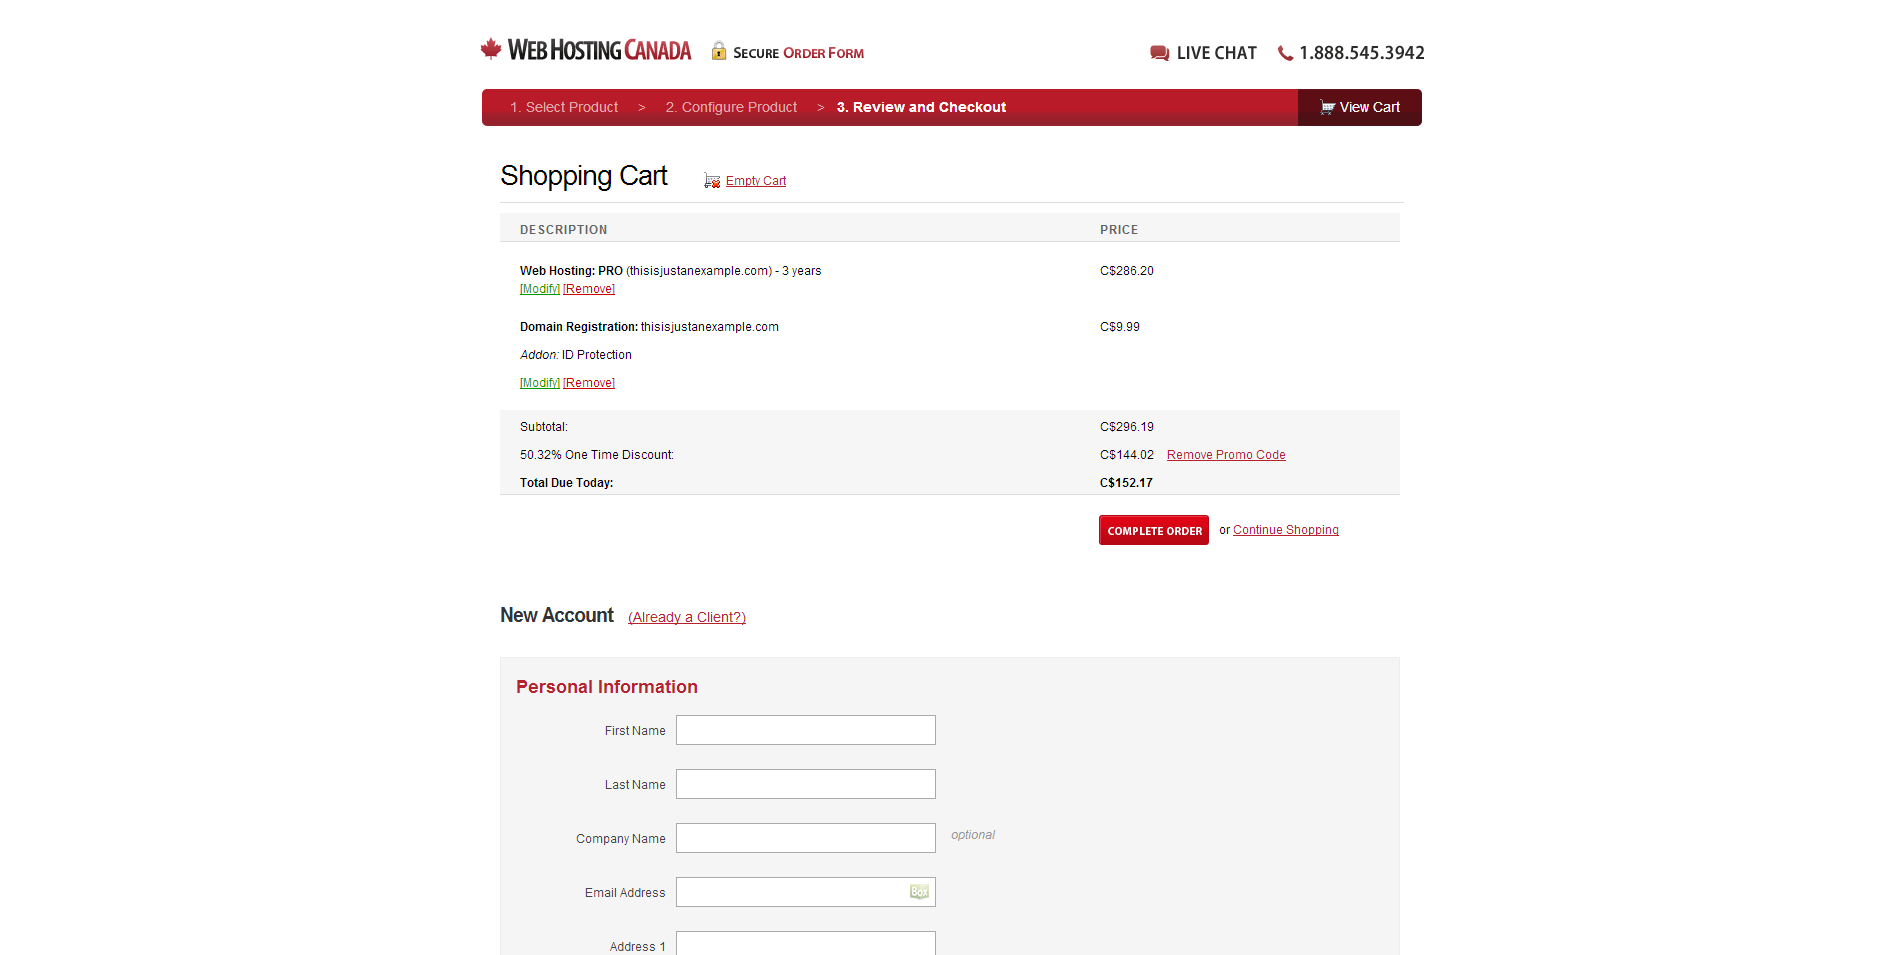 WHC.ca Billing Page